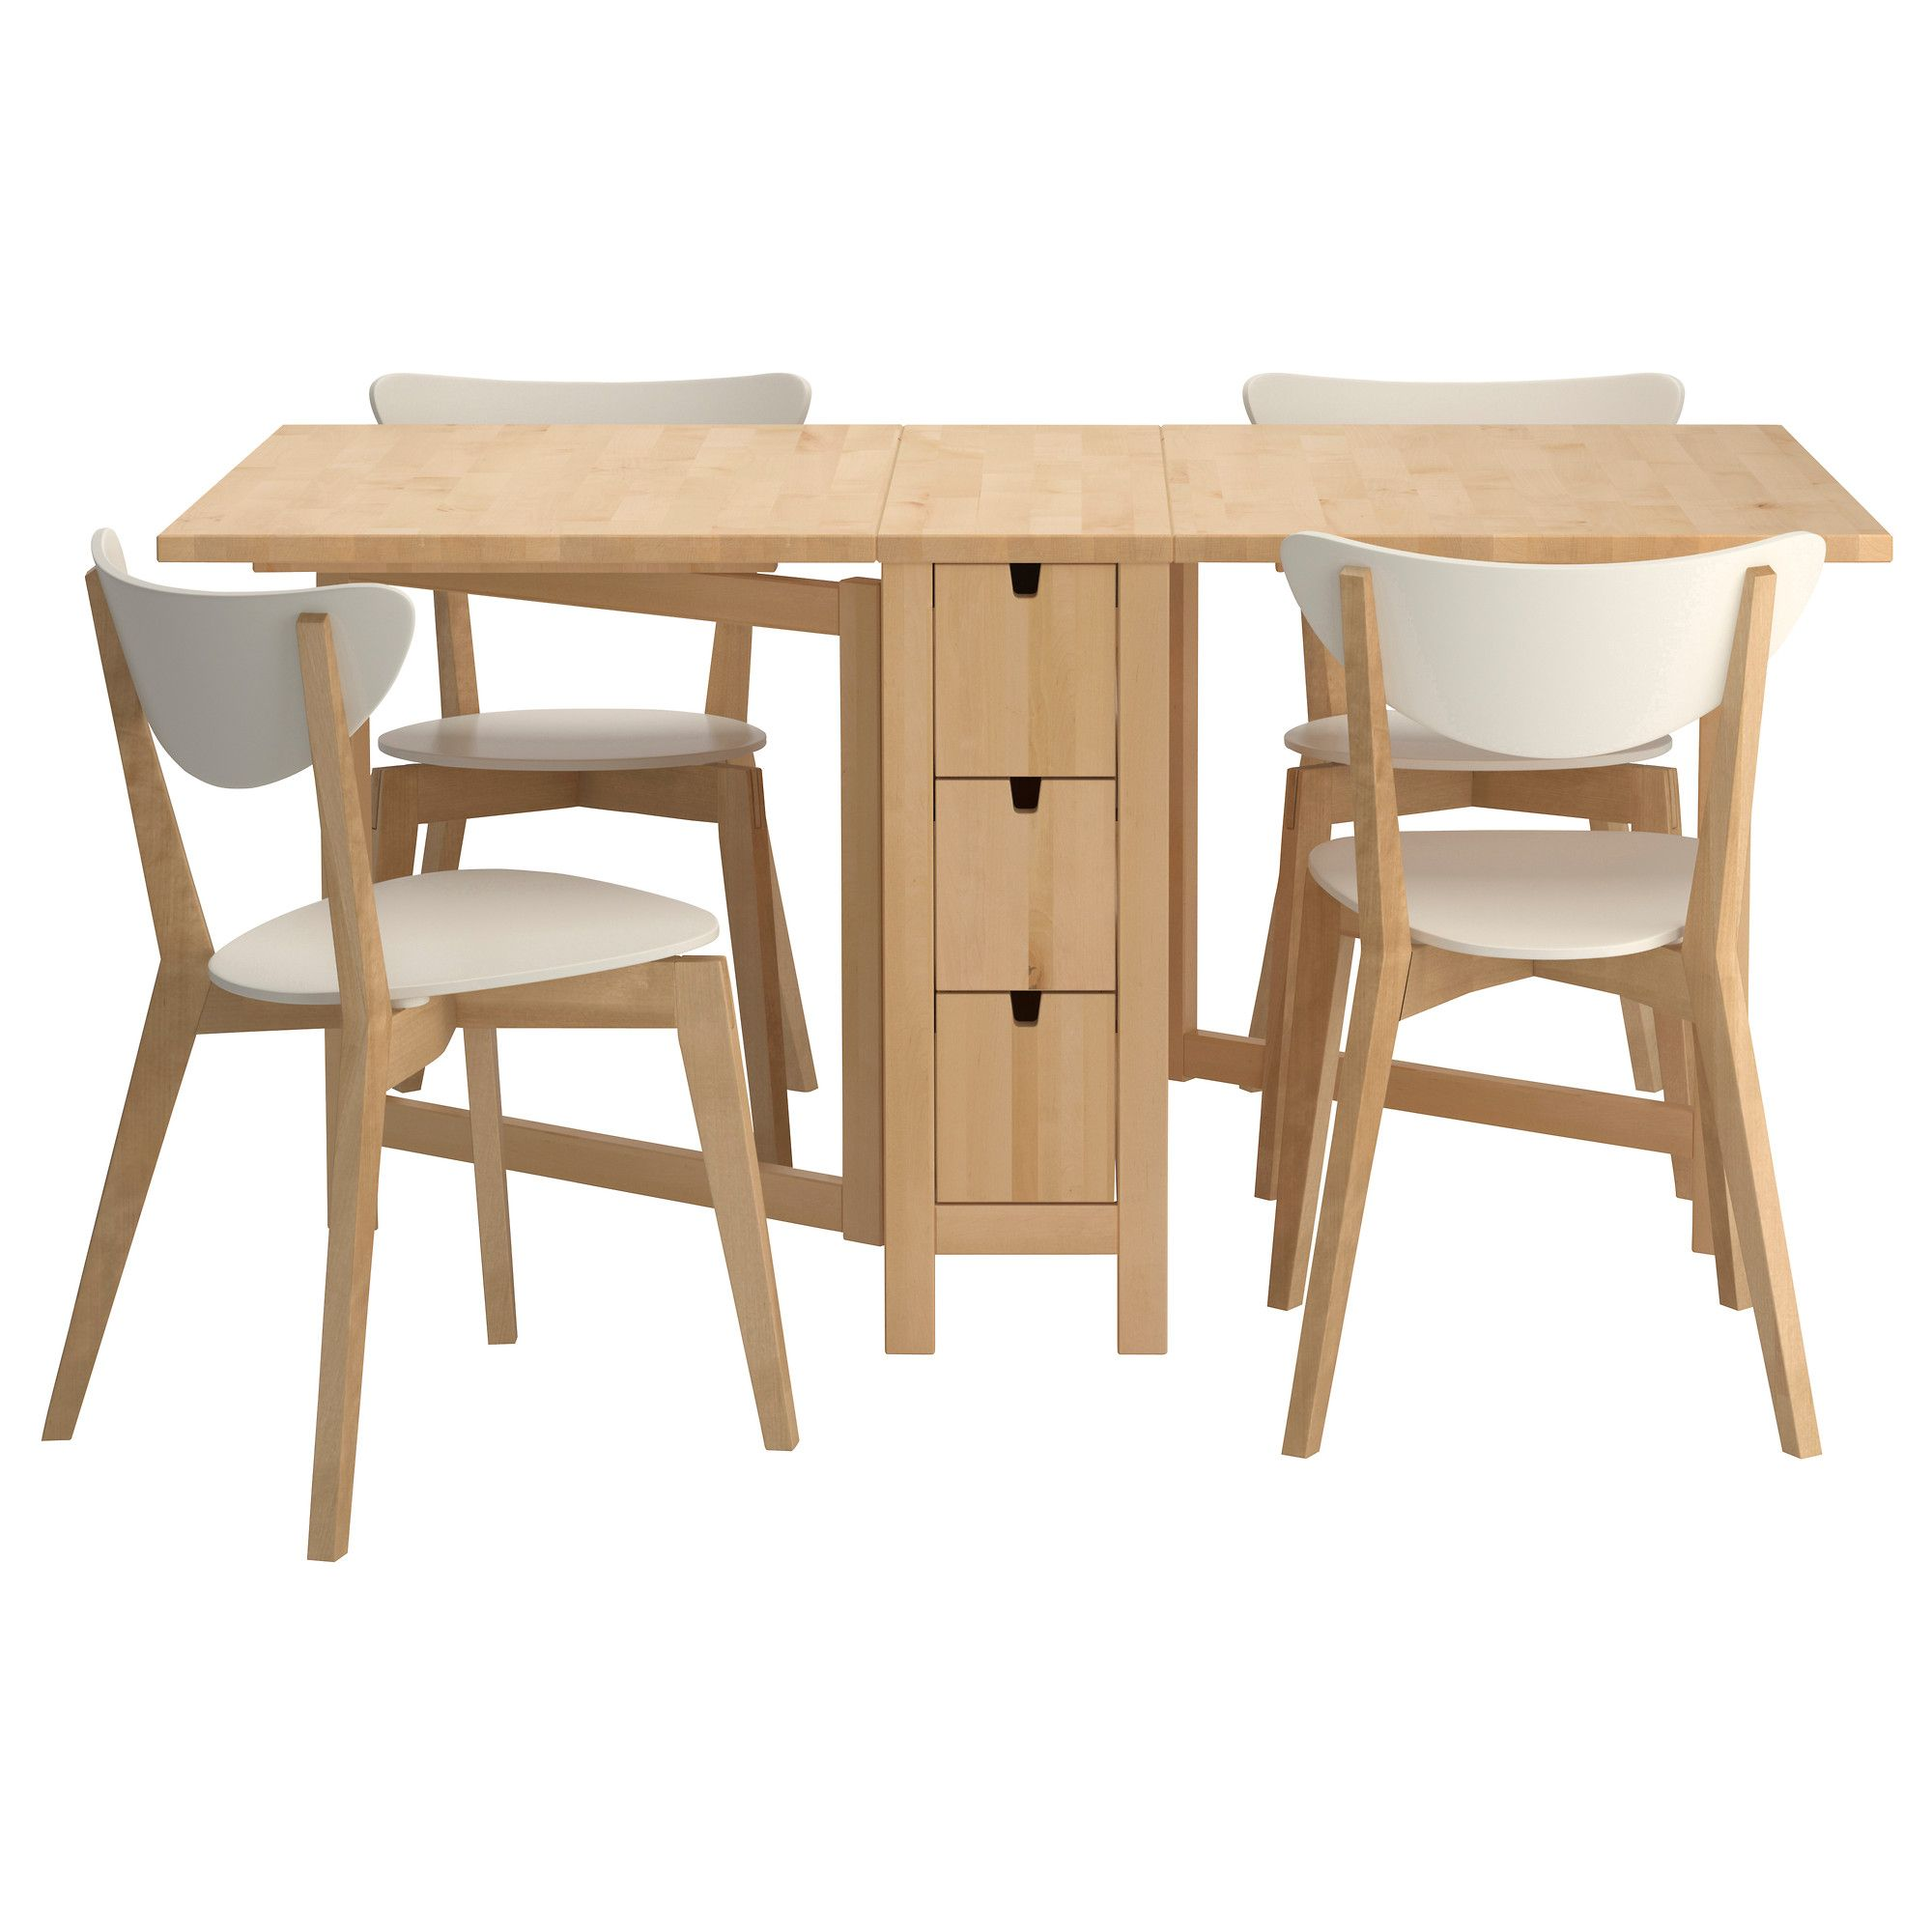 NORDEN/NORDMYRA Table and 4 chairs - IKEA : for the love of kitchens : Pinterest : Ikea dining ...